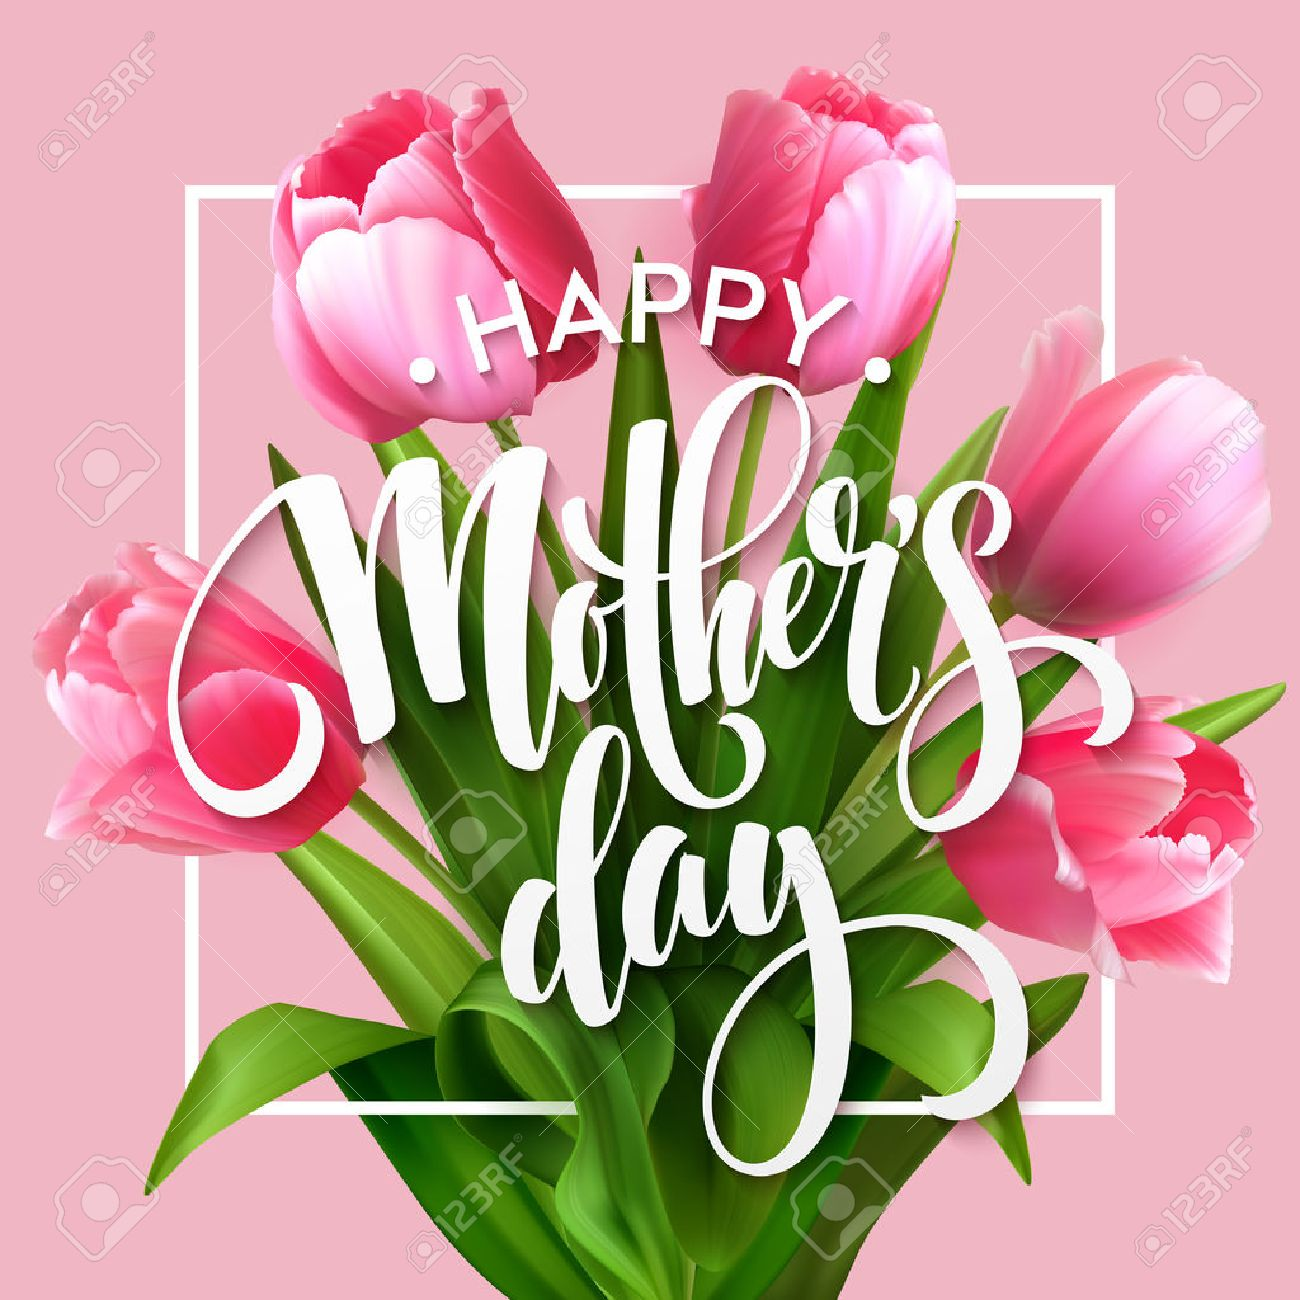 Happy mothers day lettering mothers day greeting card with happy mothers day lettering mothers day greeting card with blooming tulip flowers vector illustration kristyandbryce Image collections